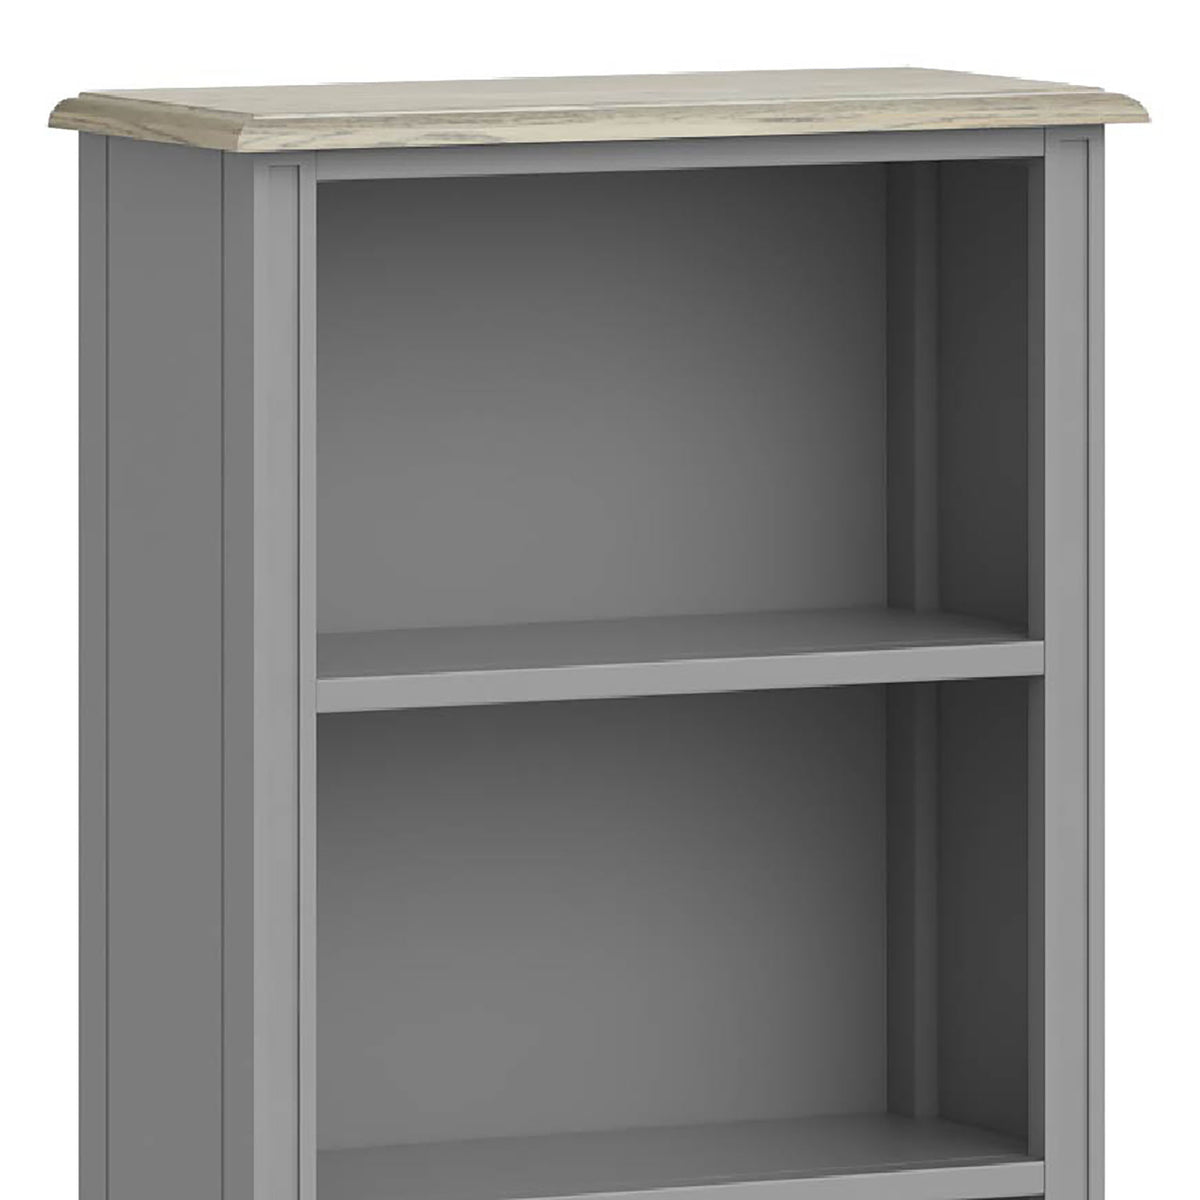 The Mulsanne Grey Slim Bookcase - Close Up of Top of Bookcase